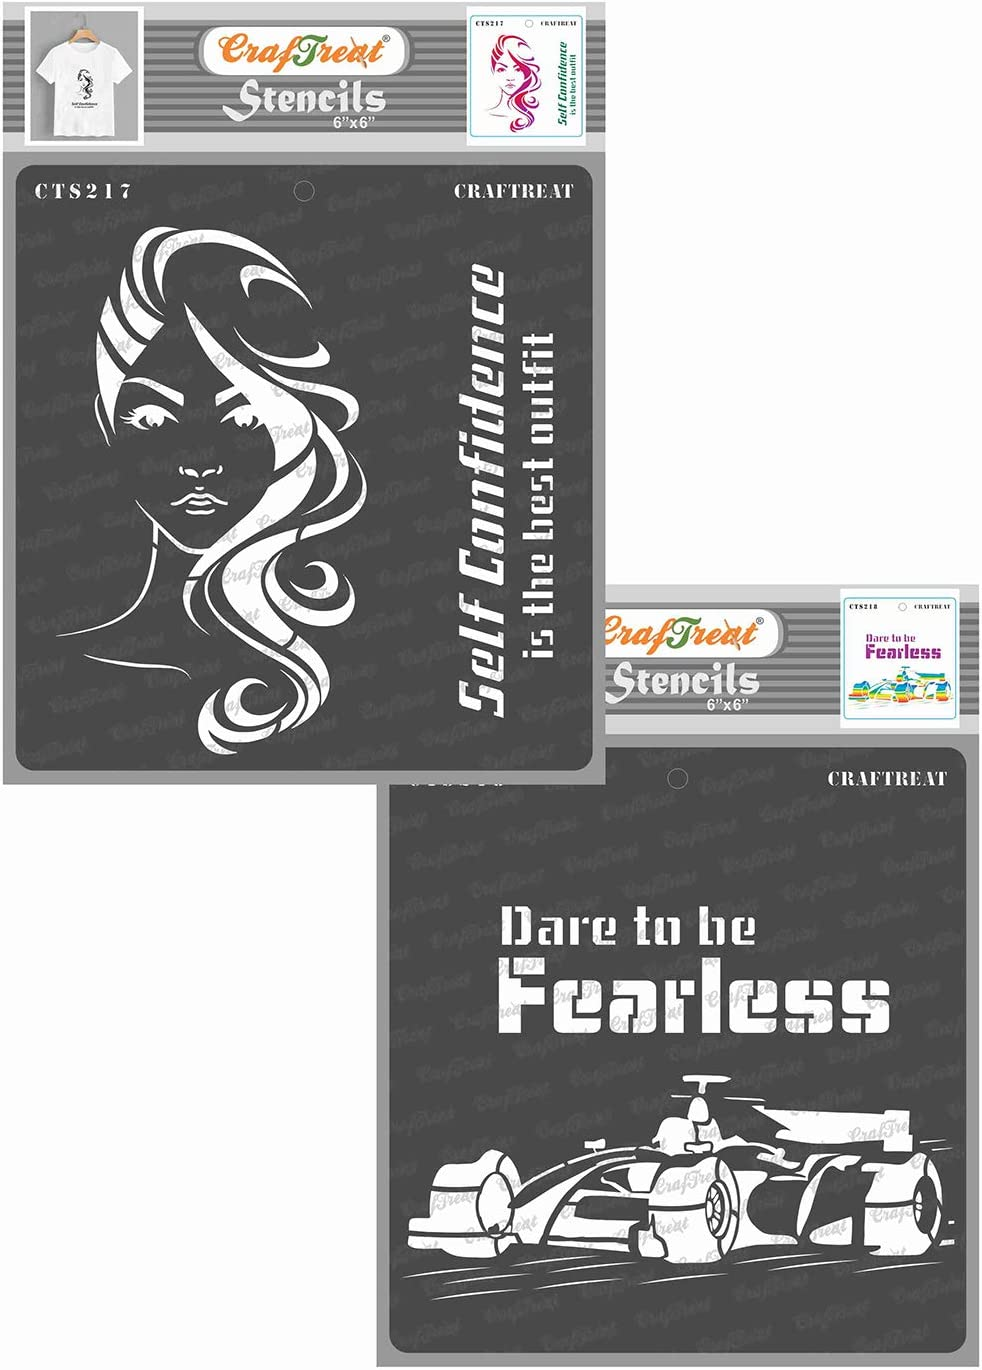 CrafTreat Stencils for Painting on Wood, Canvas, Paper, Fabric, Wall and Tile - Confident Woman and Dare to be Fearless - 2 Pcs - 6x6 Inches Each - Reusable DIY Art and Craft Stencils for Home Decor